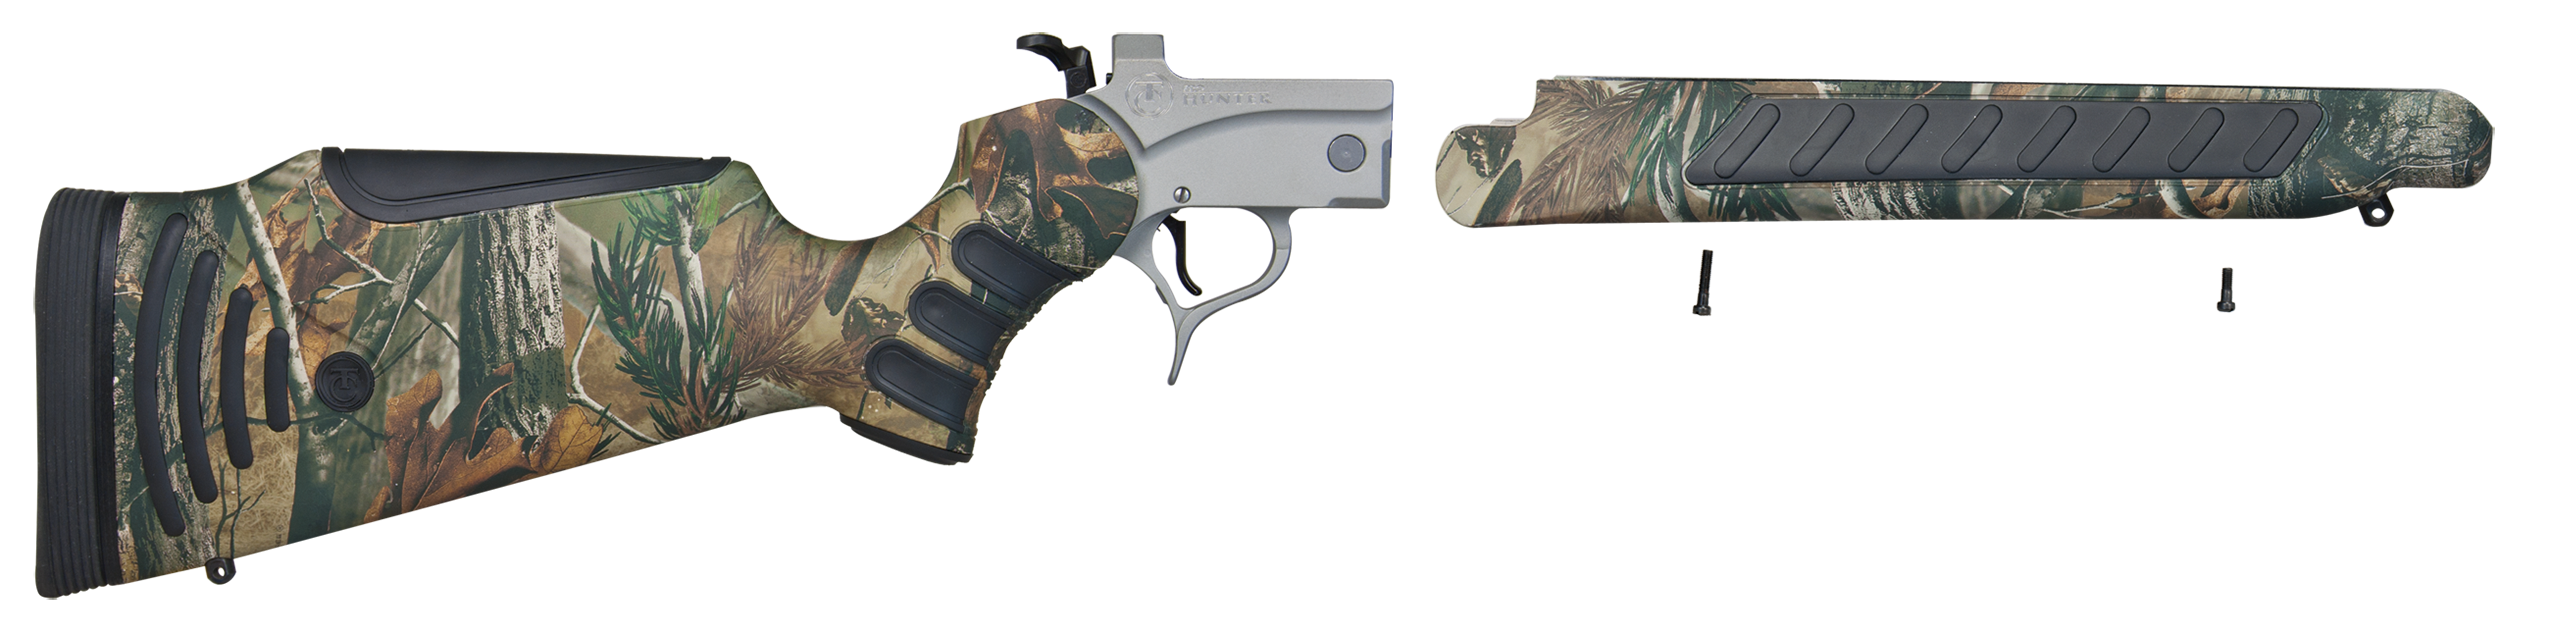 T/C Arms 08151875 Pro Hunter Frame Pro Hunter Stainless Steel Realtree Hardwoods Synthetic